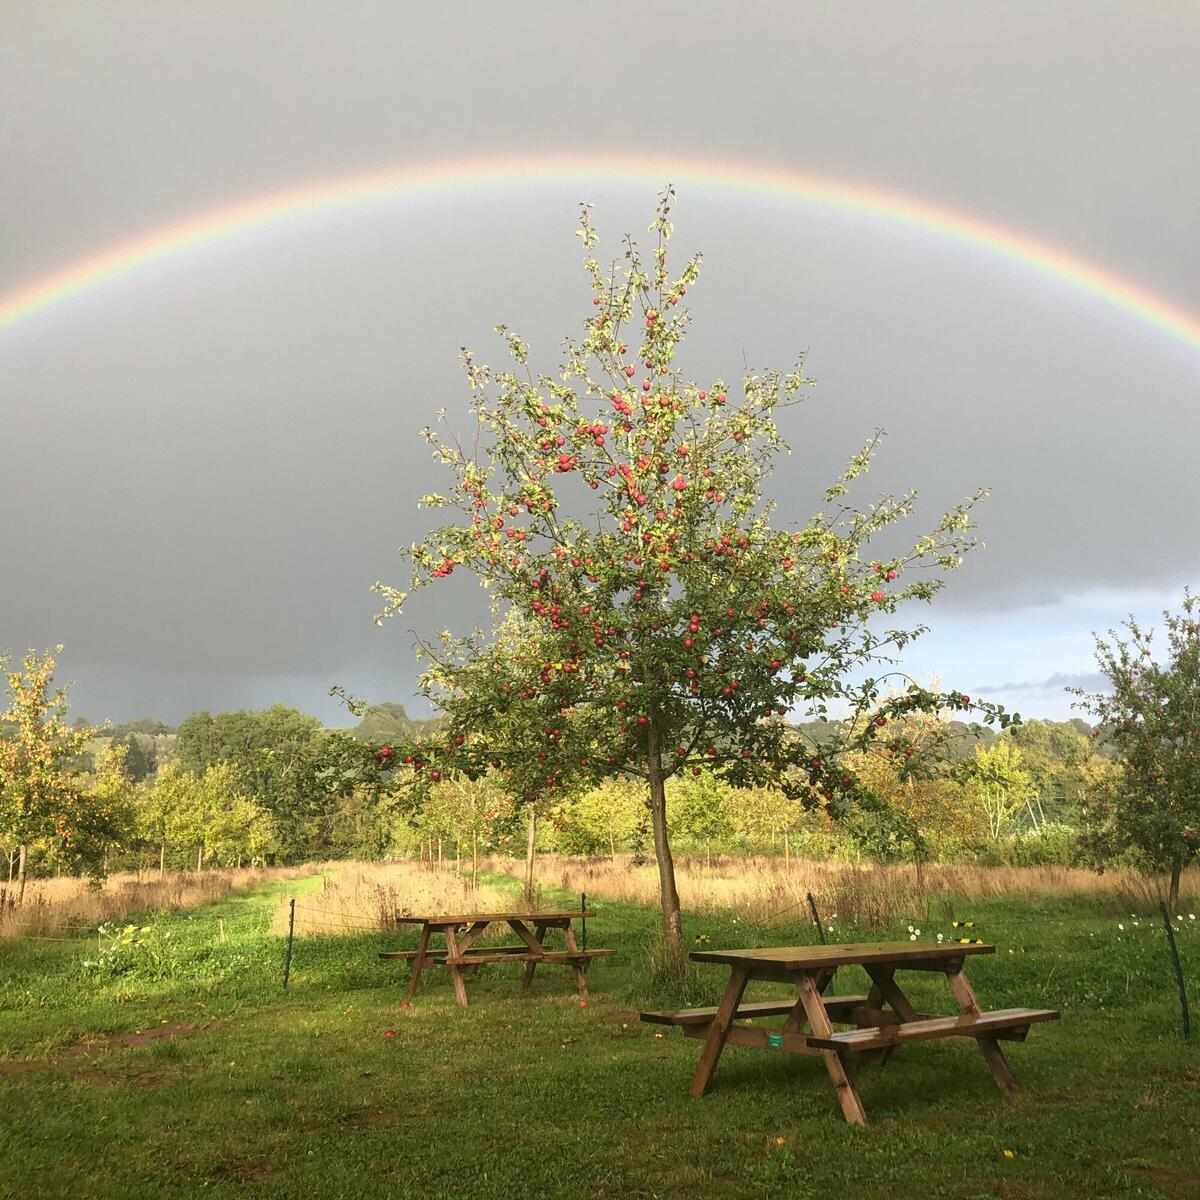 Somewhere… over the rainbow  🍎  The Tasting Room cider garden